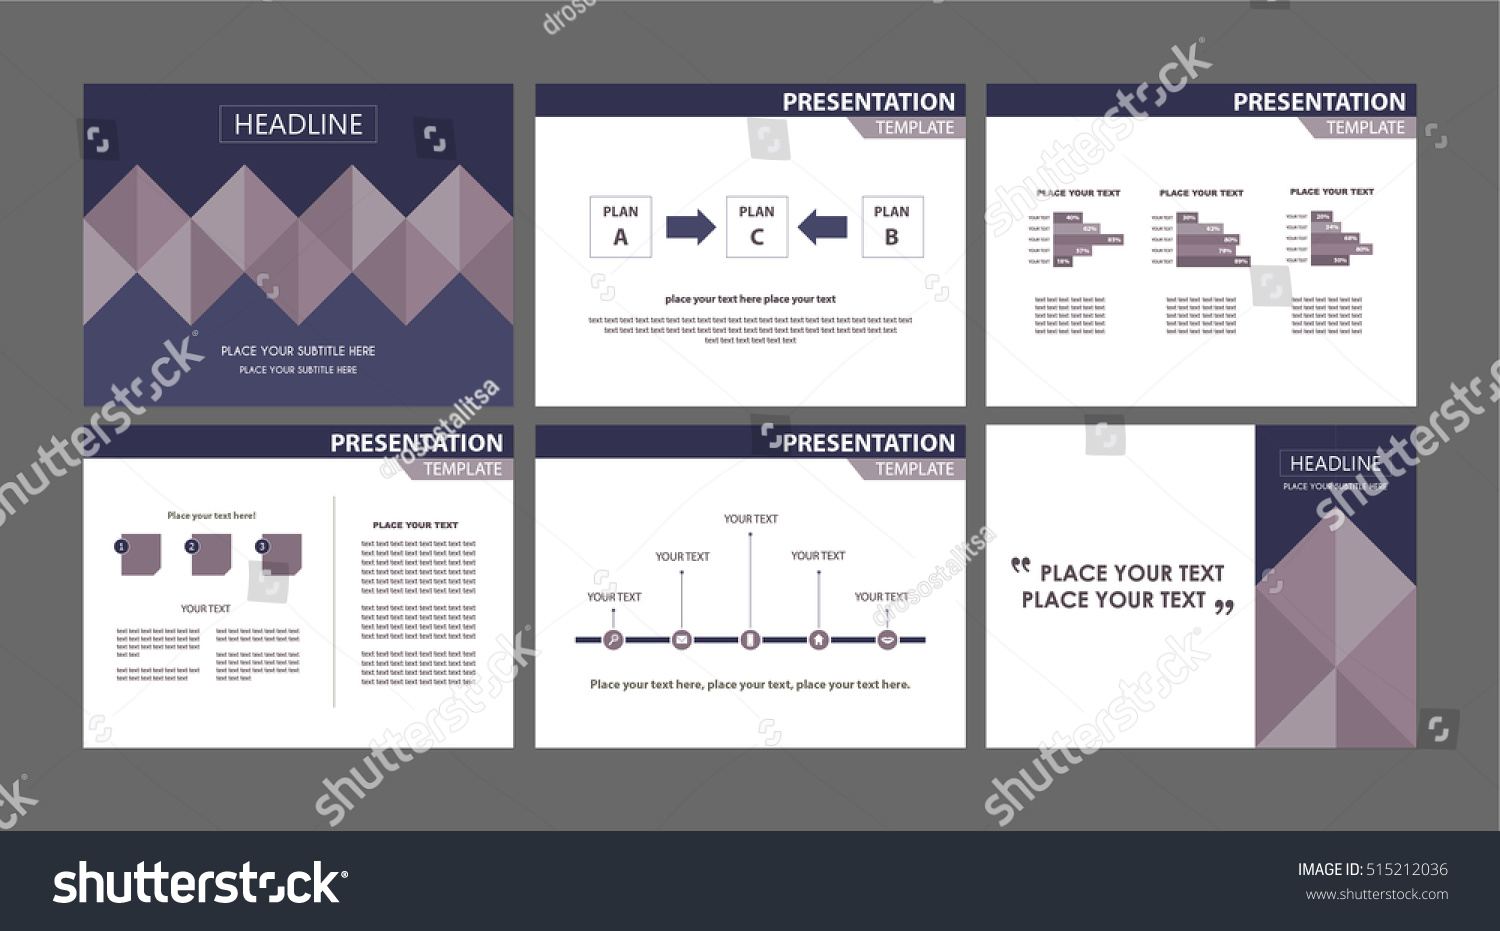 business marketing presentation templates collection conference の